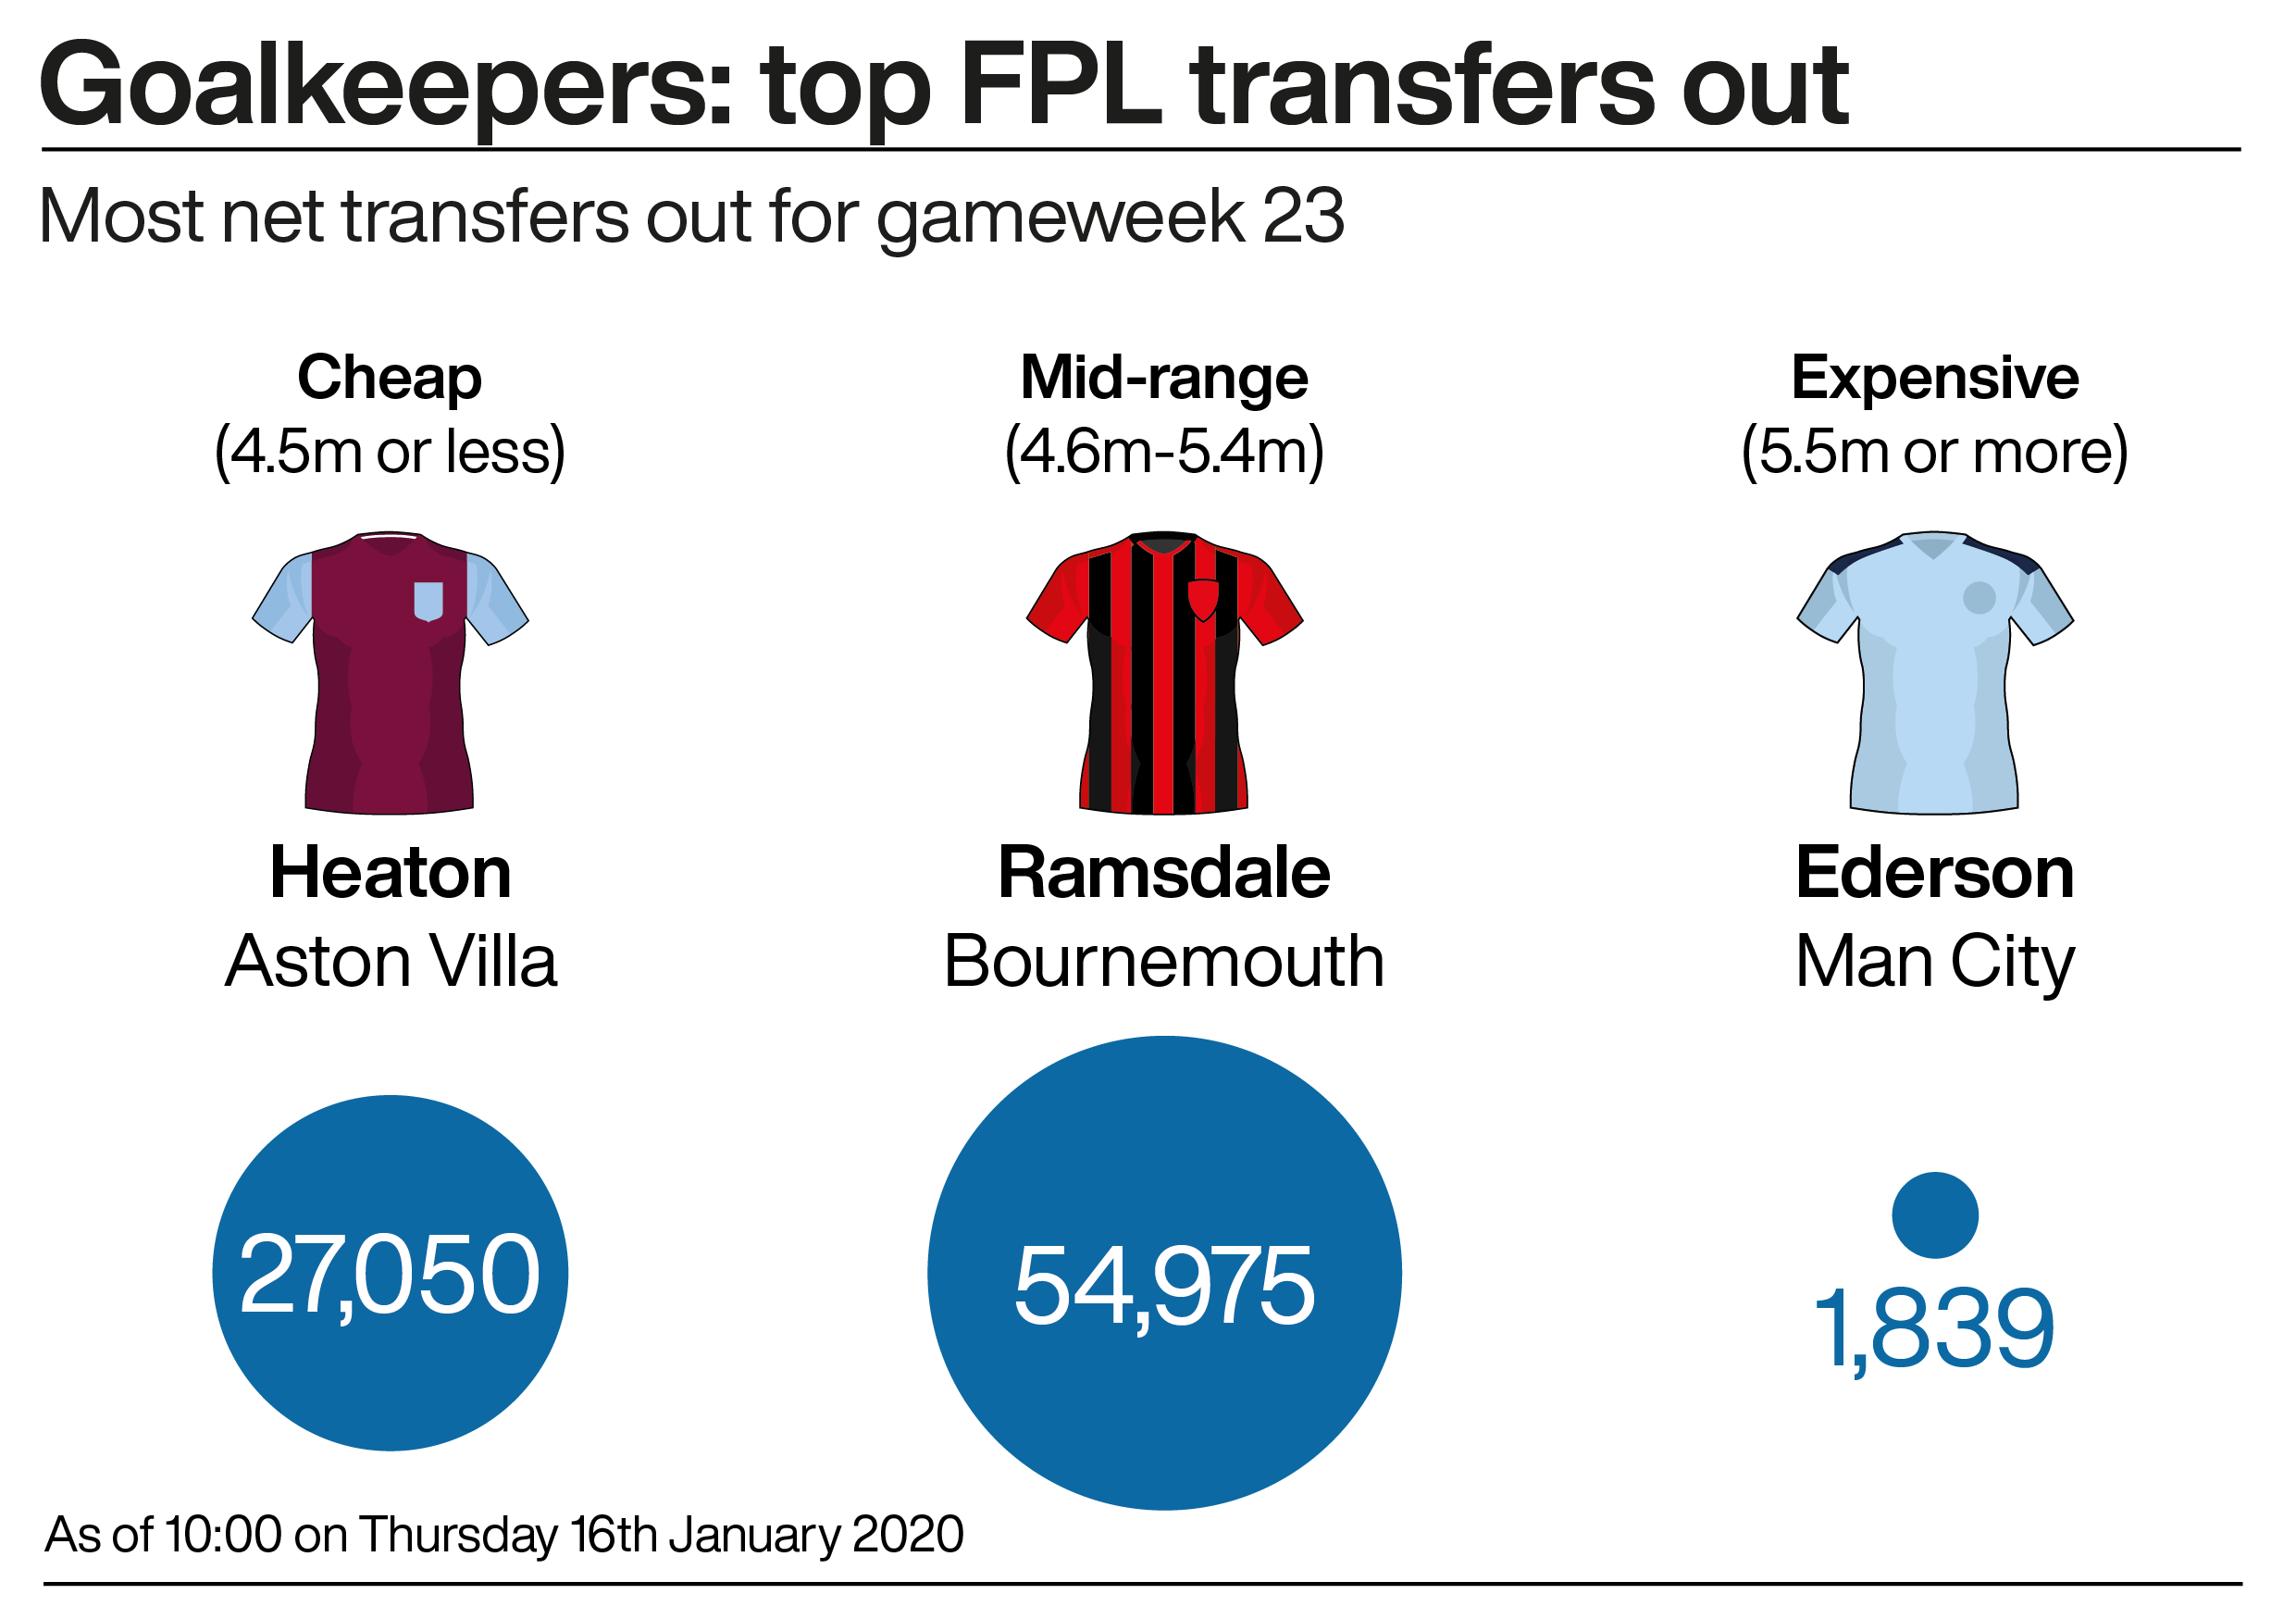 The top transfers out in net in gameweek 23